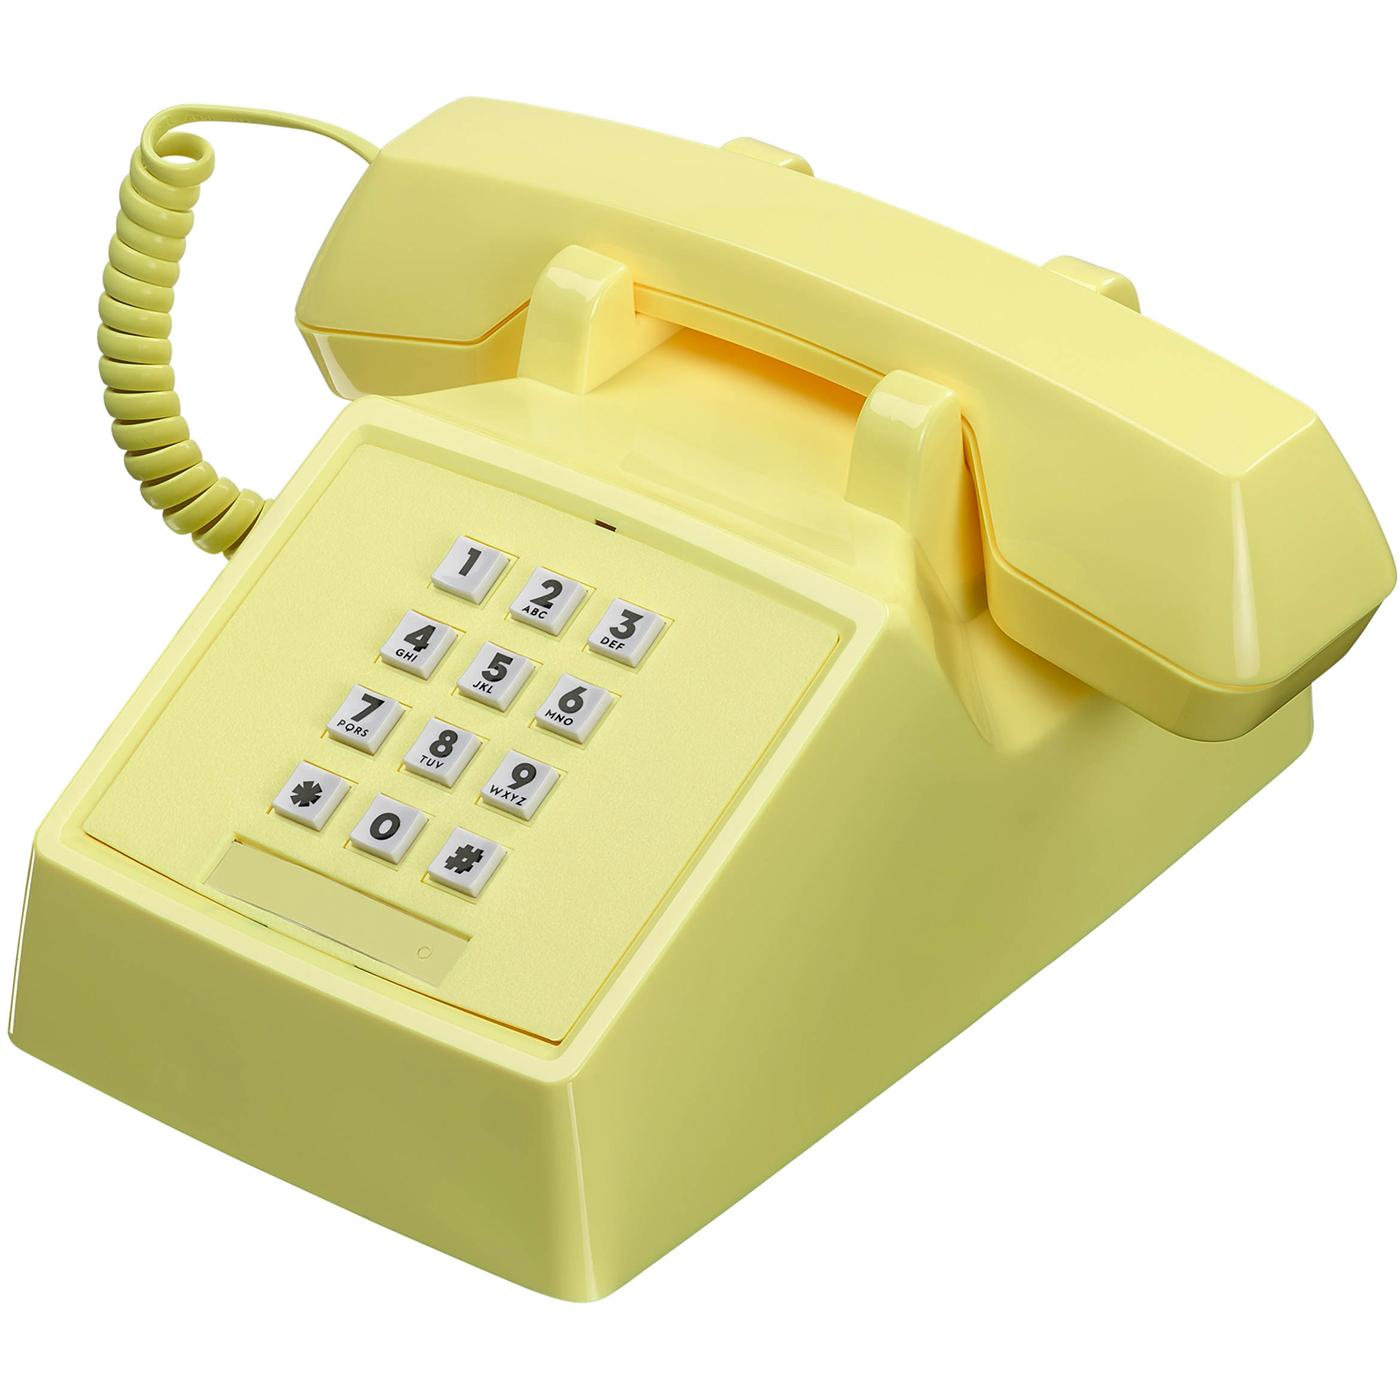 2500 Phone Retro 80s Vintage Telephone in Lemon